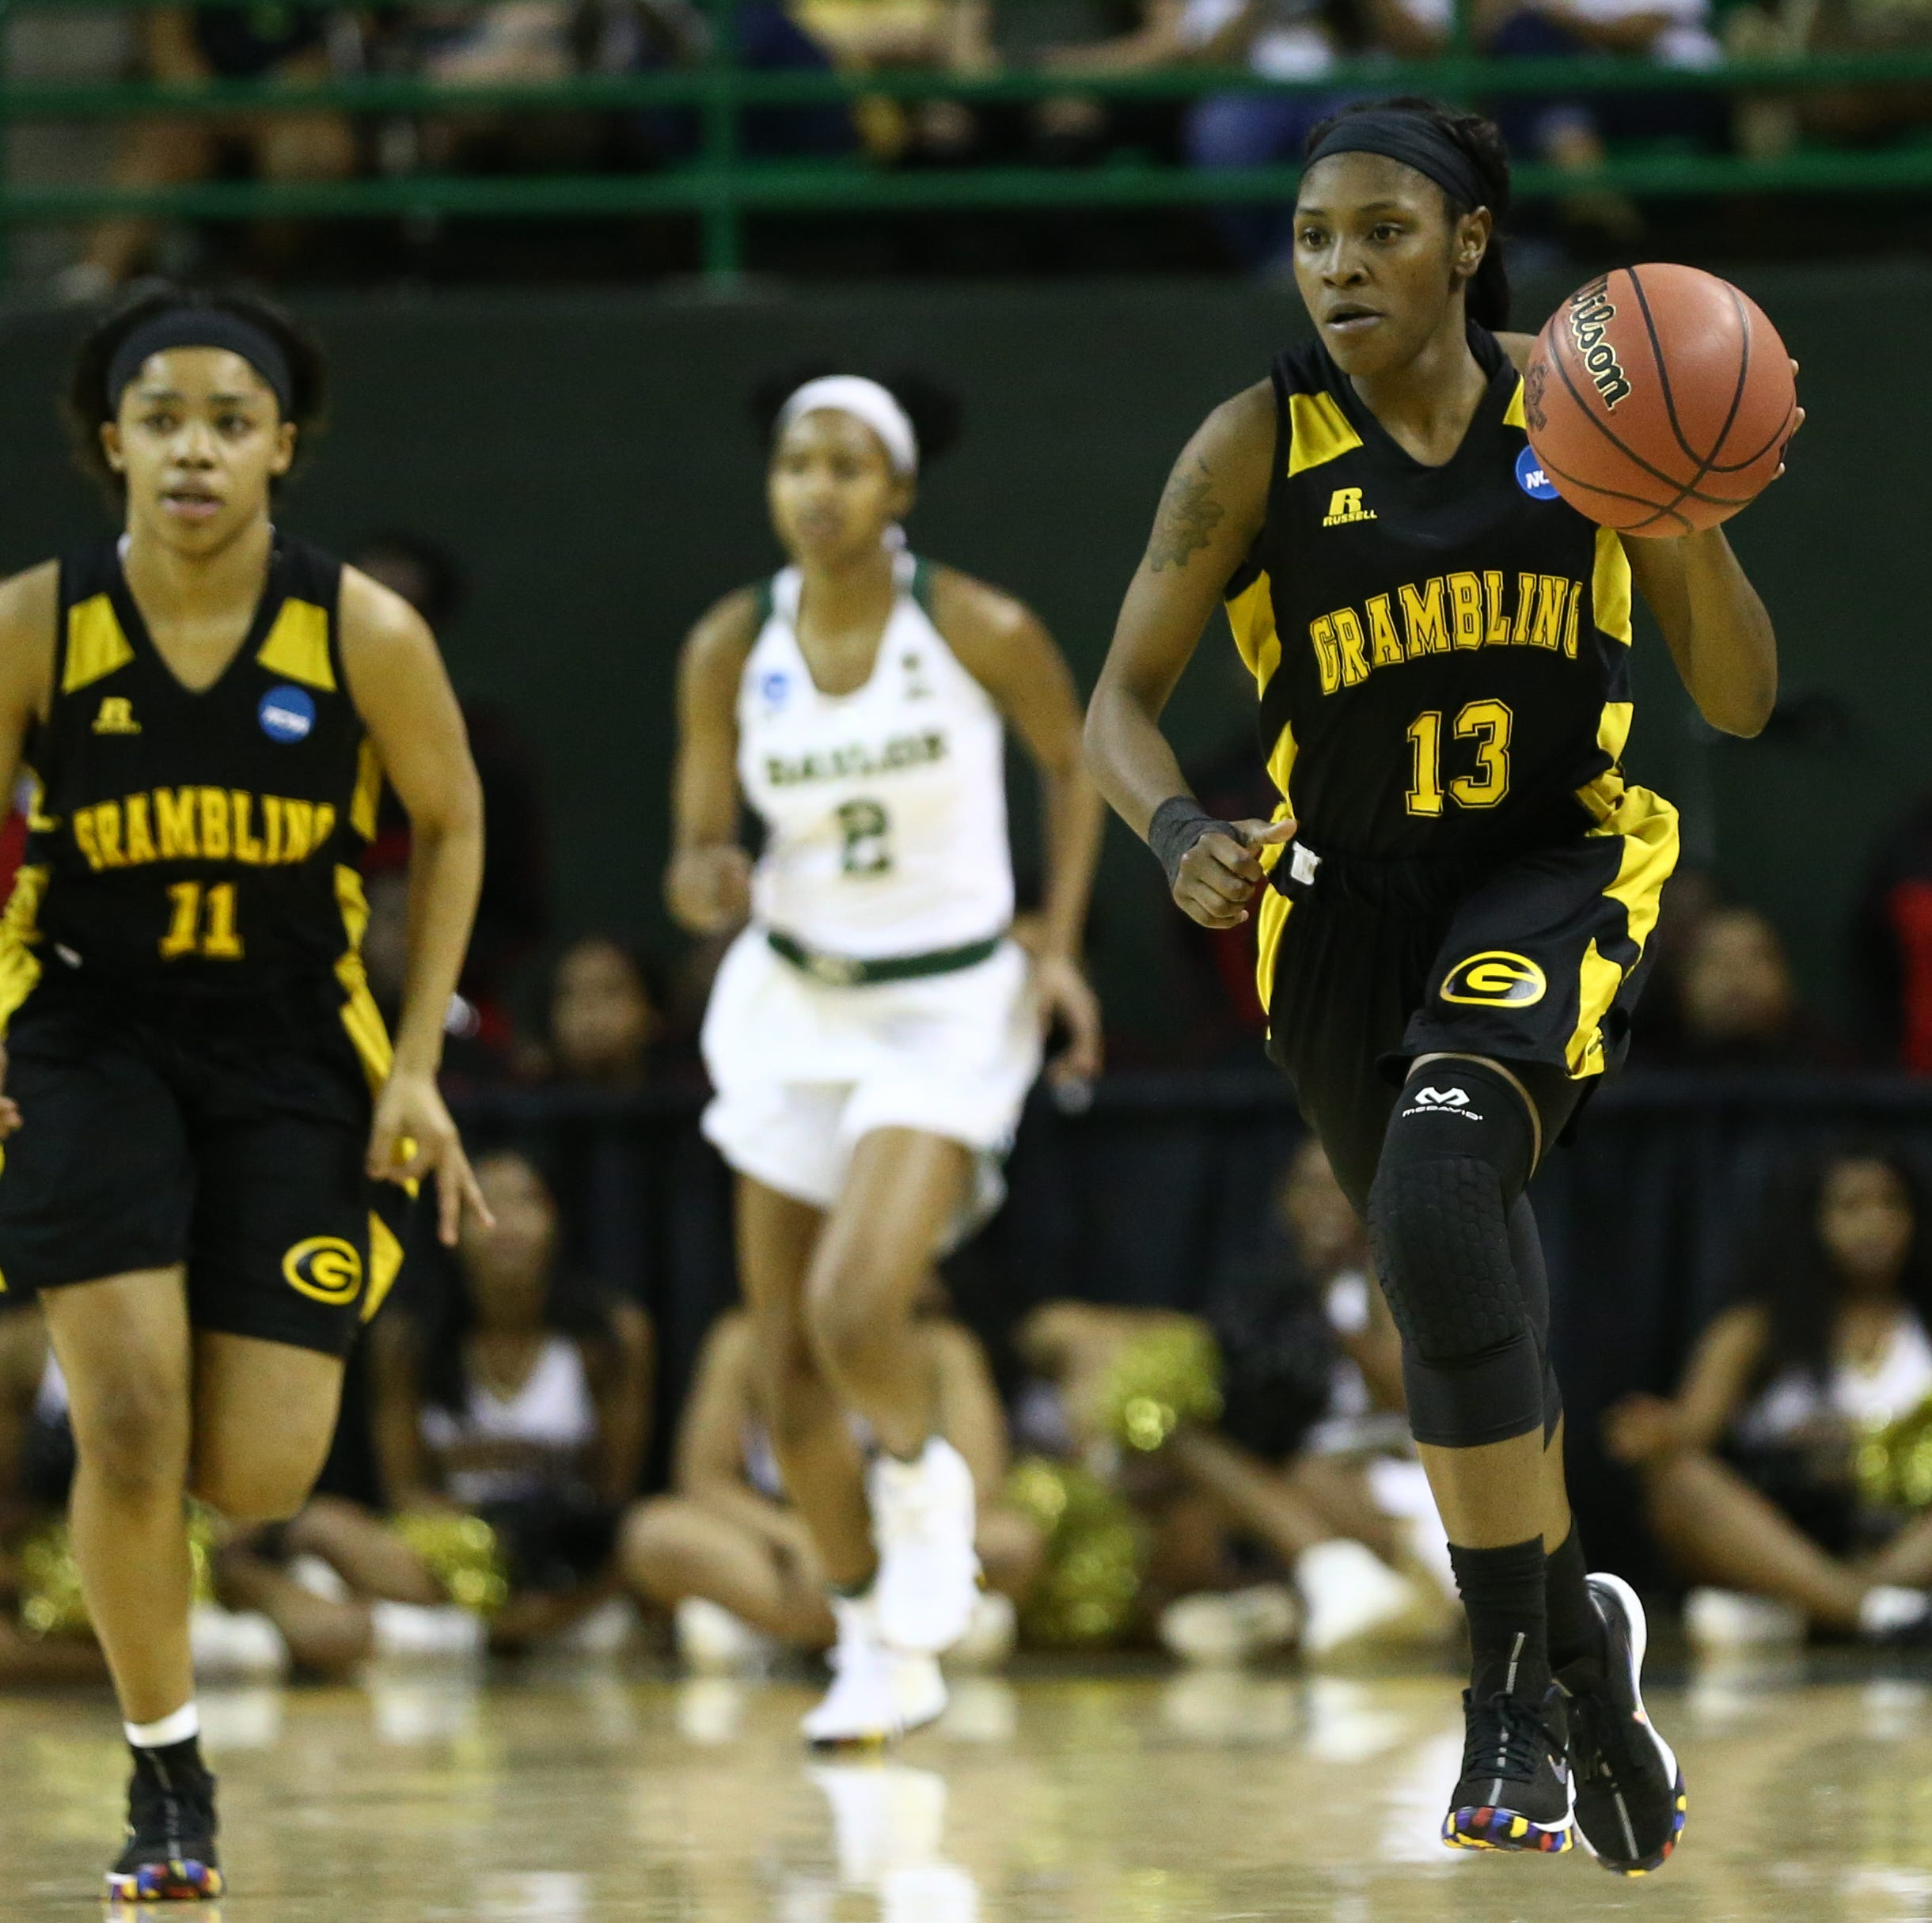 Grambling women fall at UT-Arlington